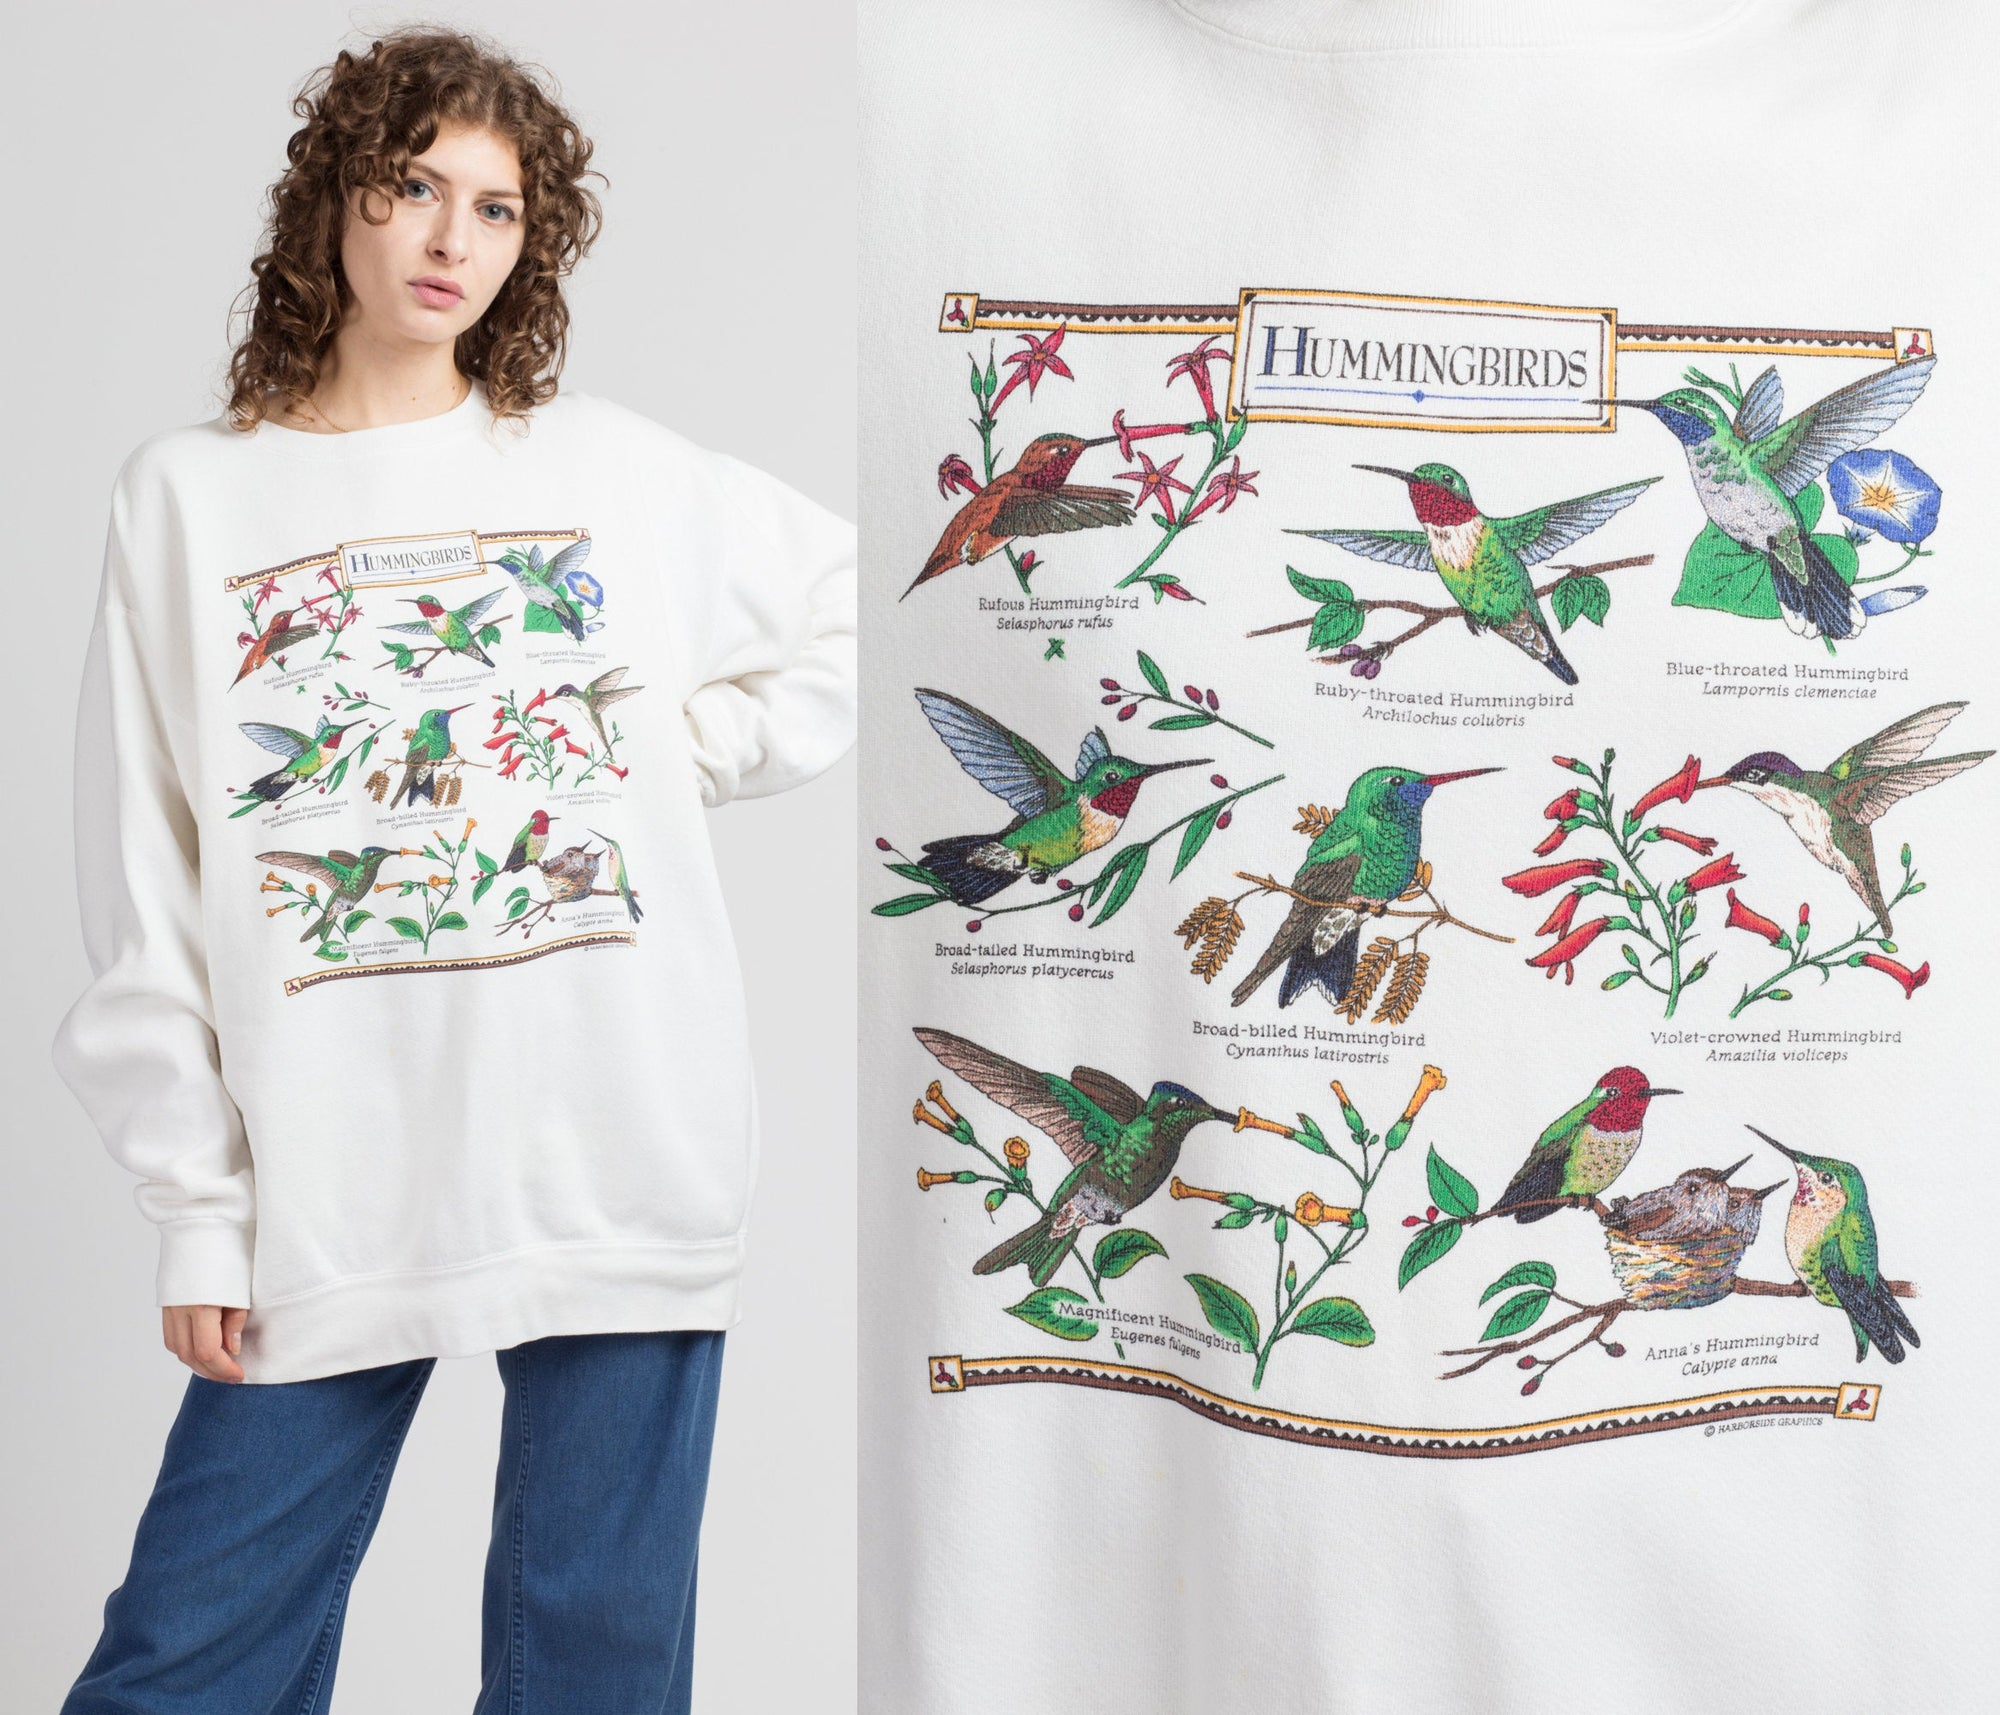 90s Hummingbird Species Graphic Sweatshirt - Men's Large